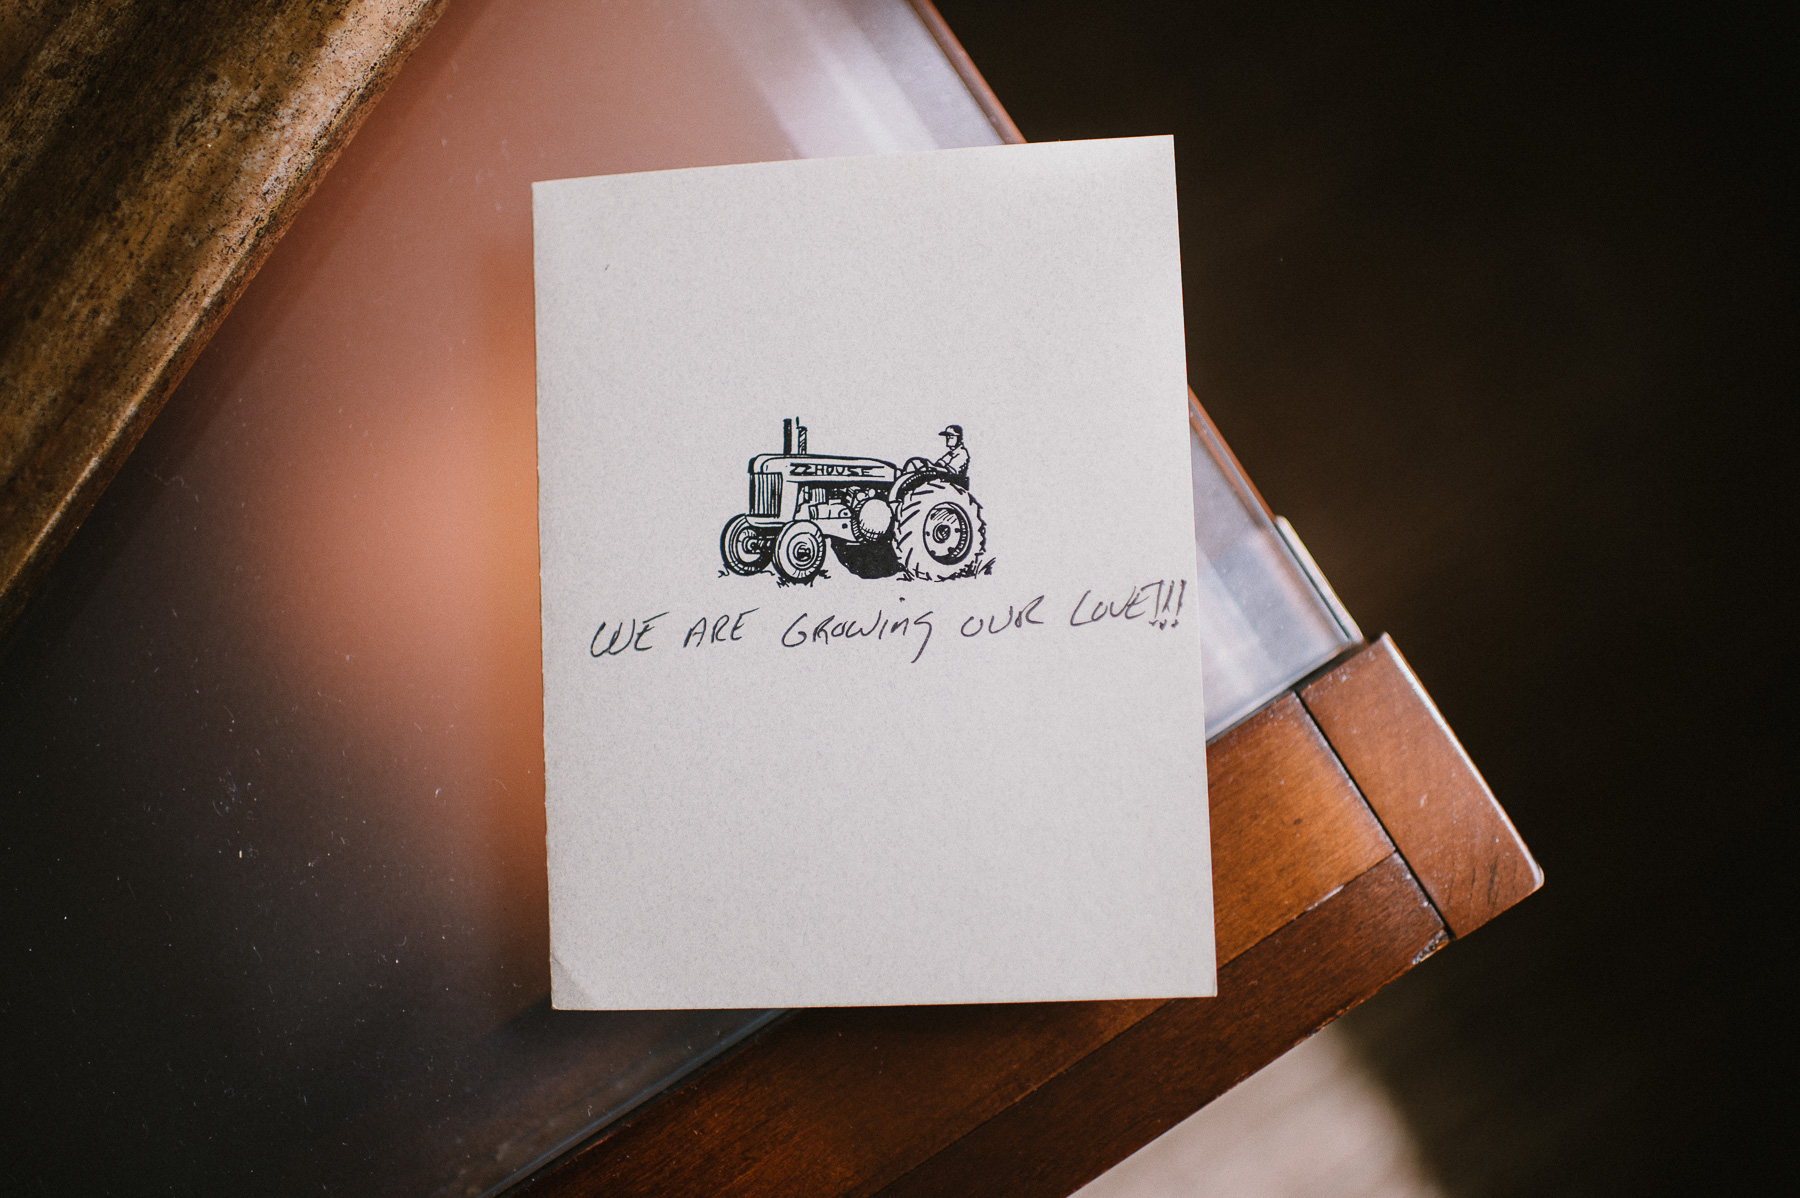 The_Carriage_House_at_Rockwood_Park_wedding_photo017.jpg